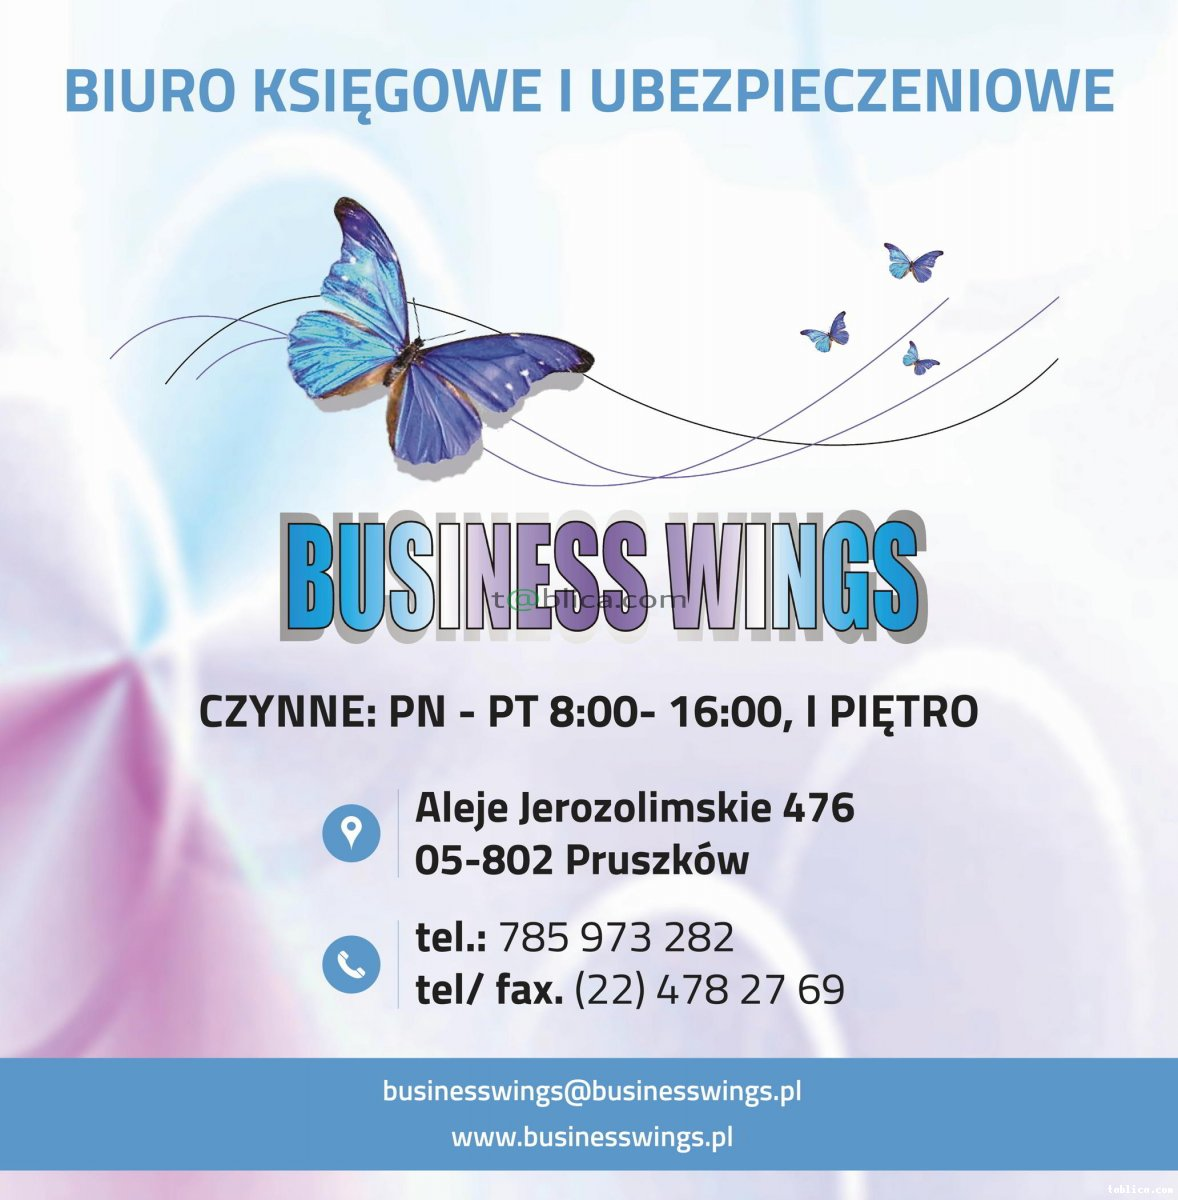 Biuro Księgowe Business Wings